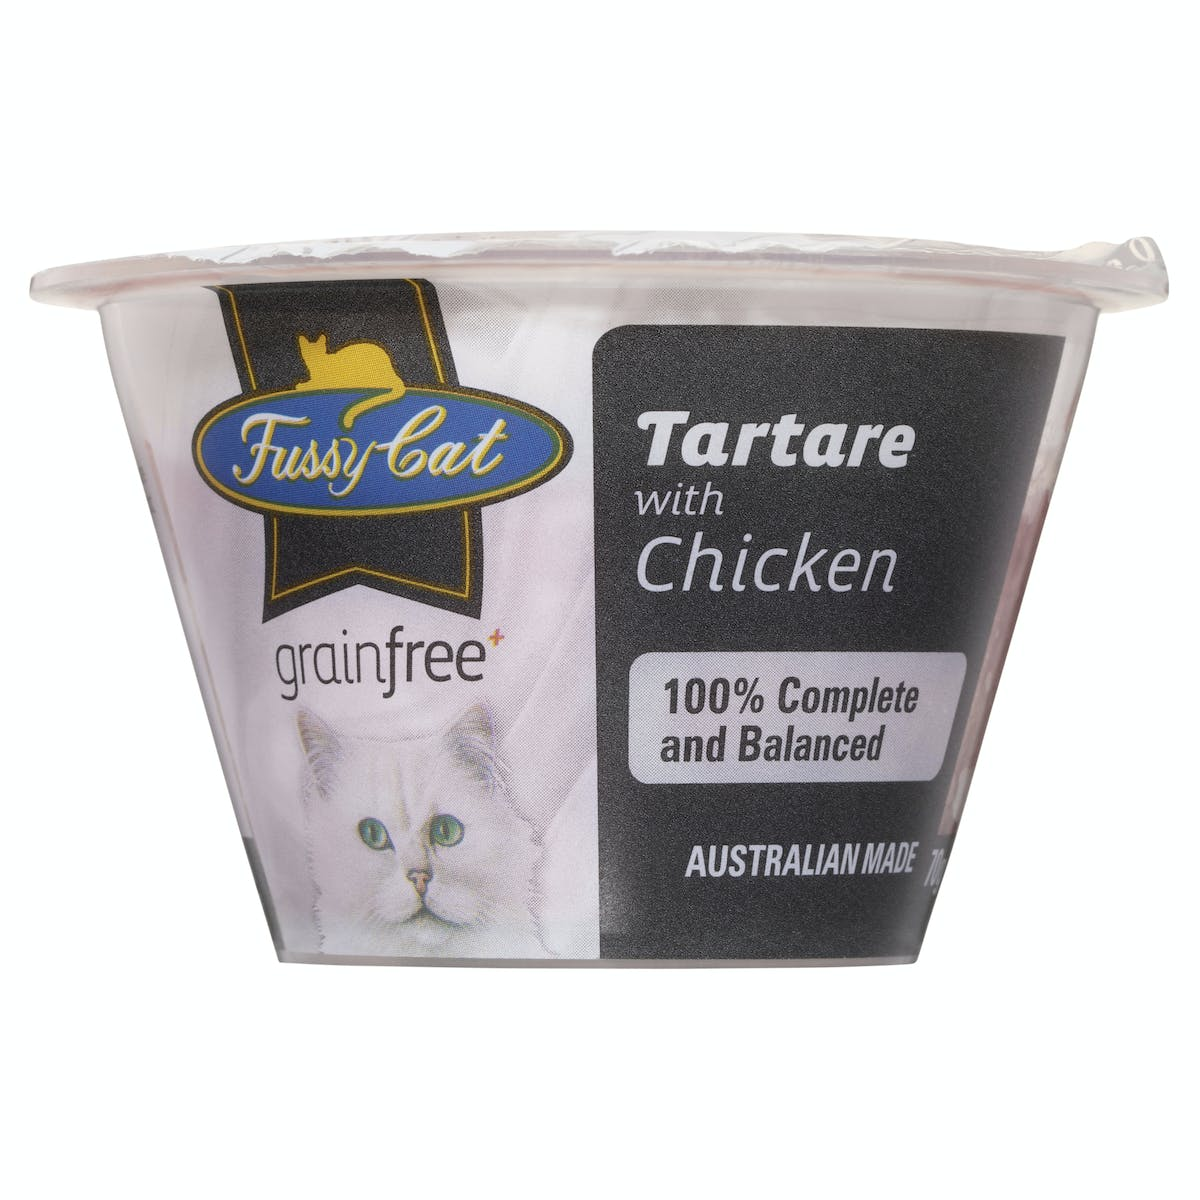 Fussy Cat   Tartare with Chicken 70g   Chilled cat food   Front of pack